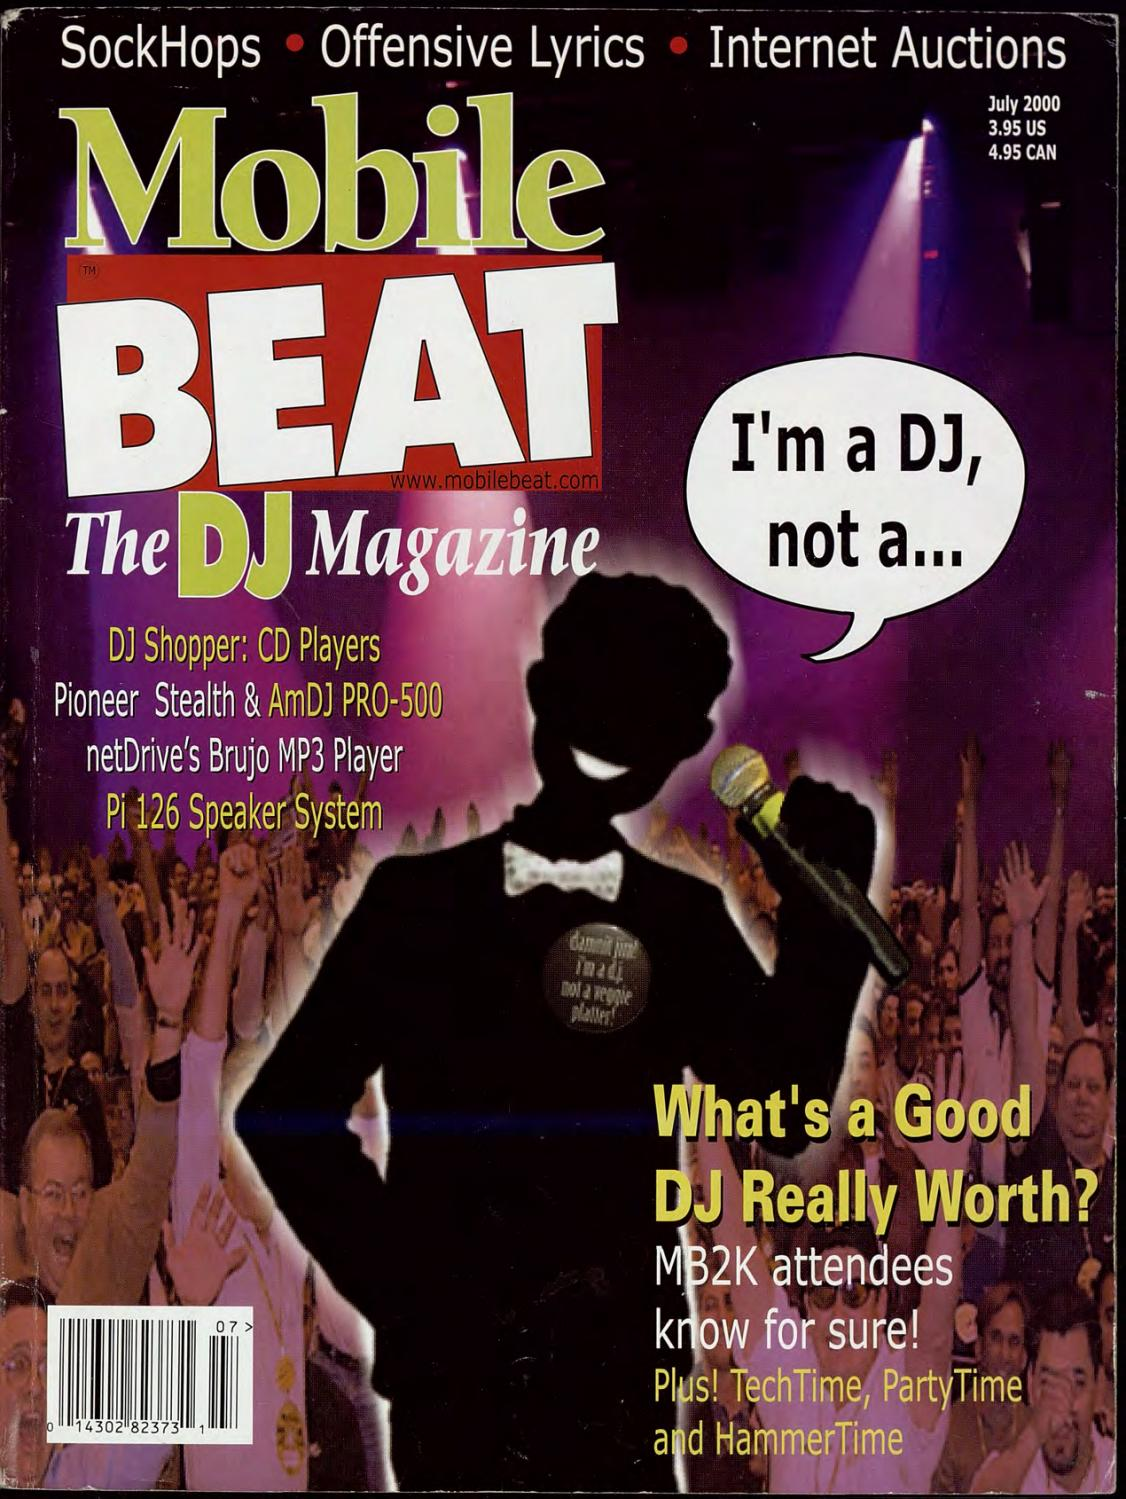 Issue 060 - March 2000 - What's a Good DJ Really Worth? by Mobile